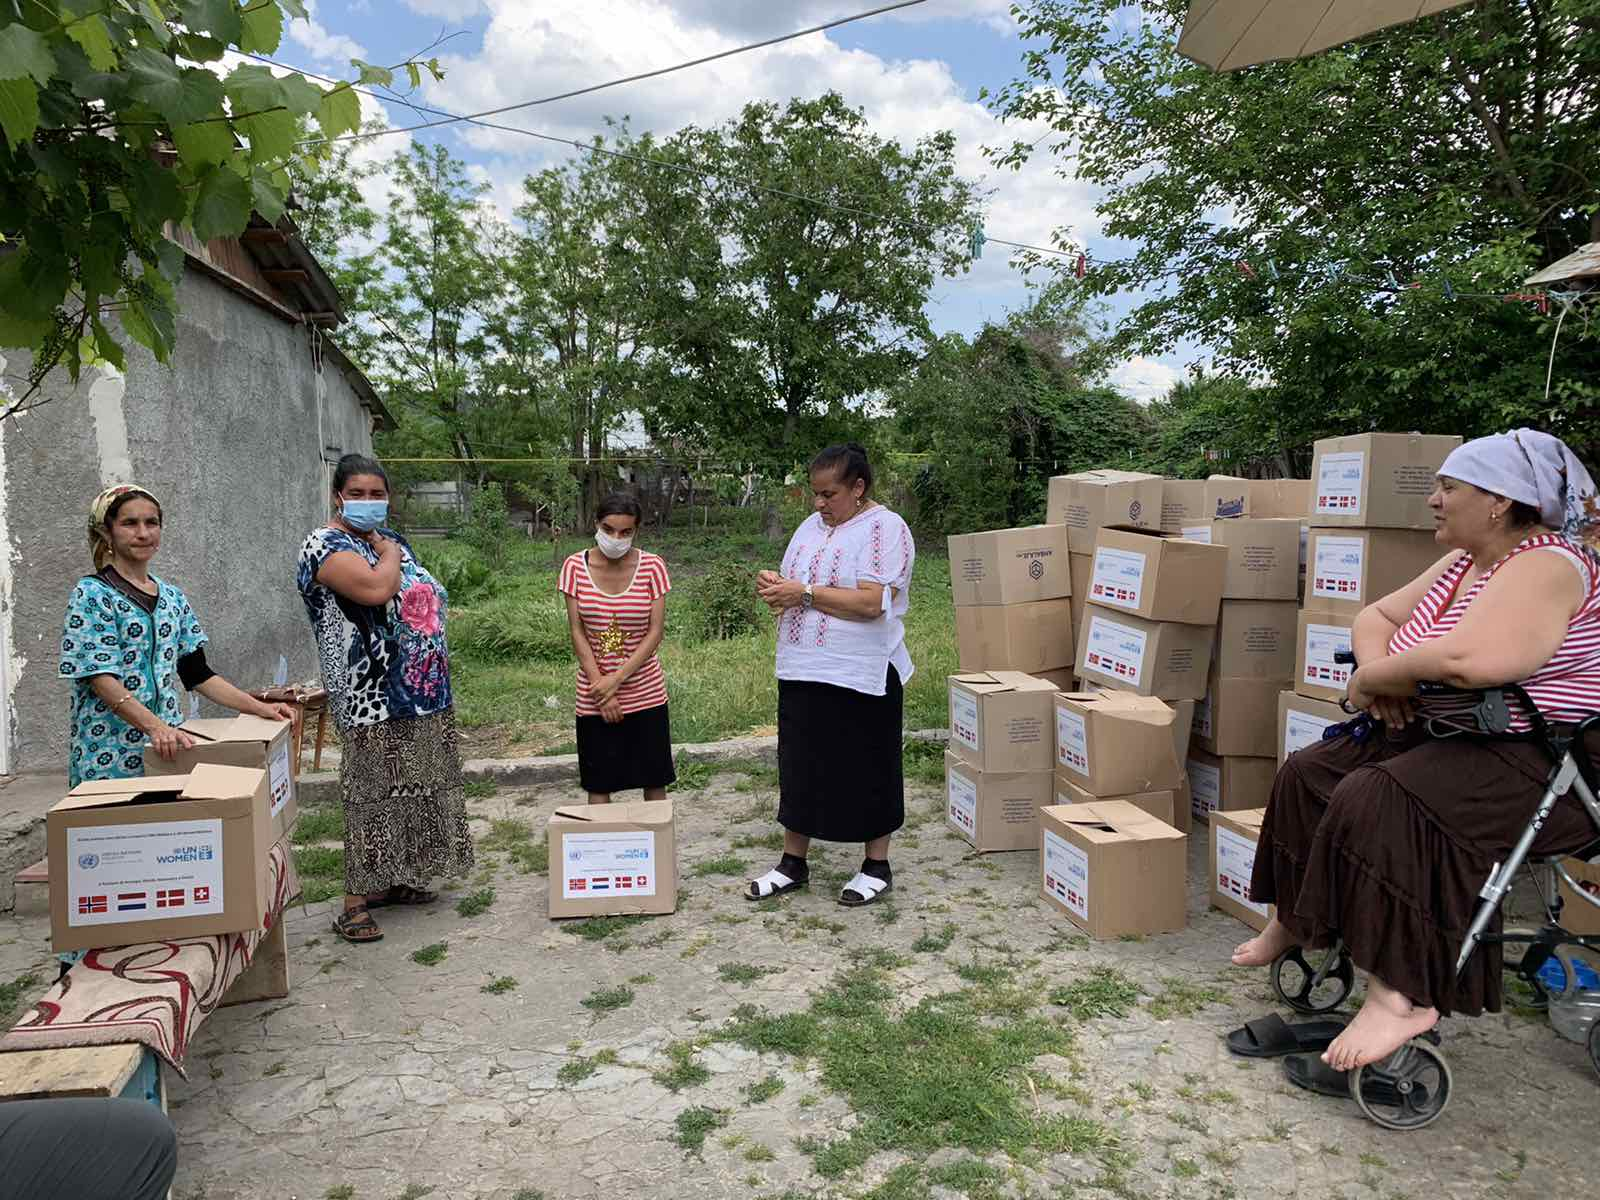 UN Moldova provided support to the Roma community from the Transnistria region to cope with the impact of the pandemic